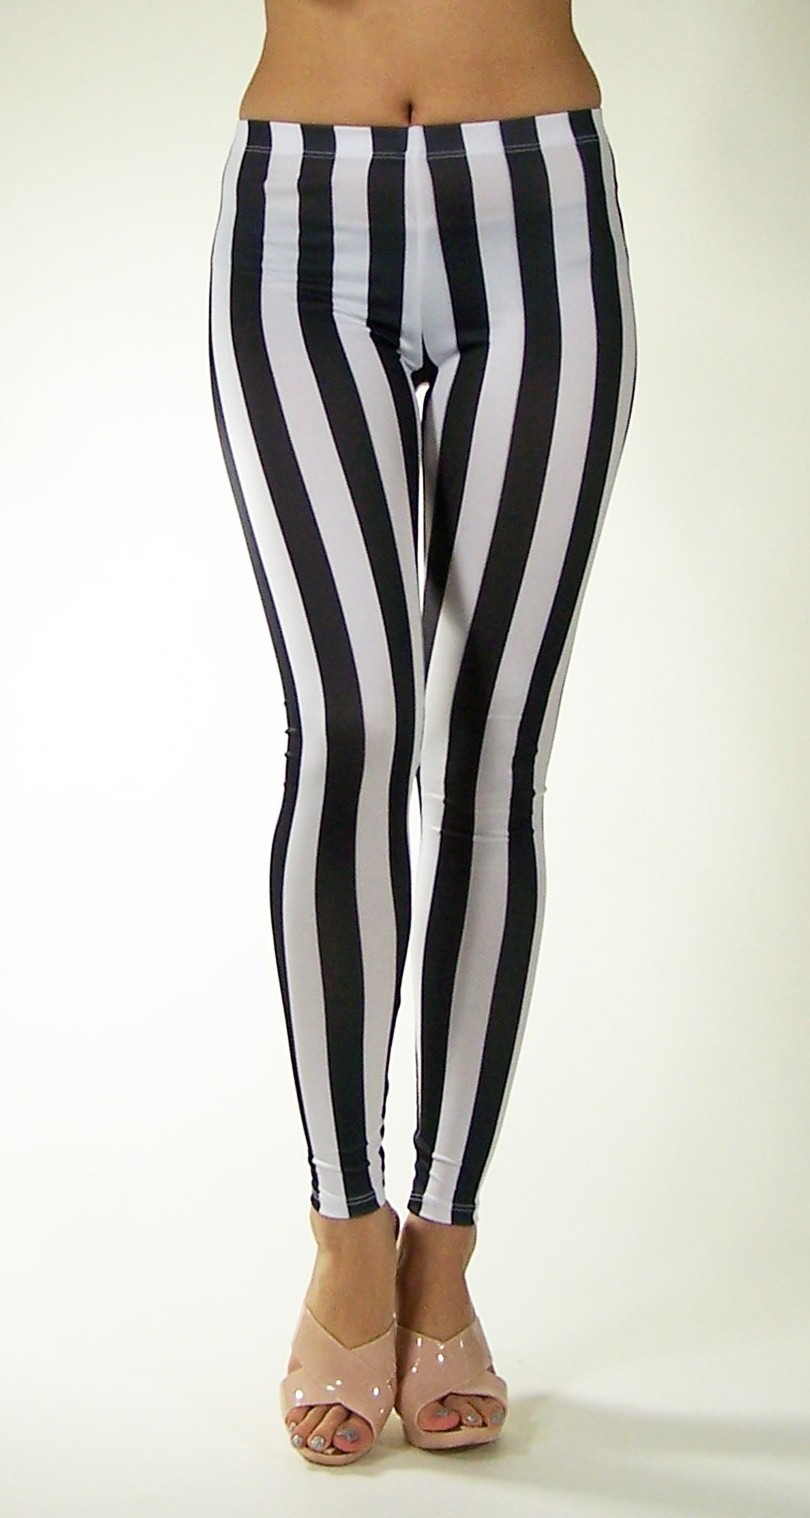 Sexy Women Leggings Black White Vertical Stripe Zebra Stretchy Tights Pants | eBay